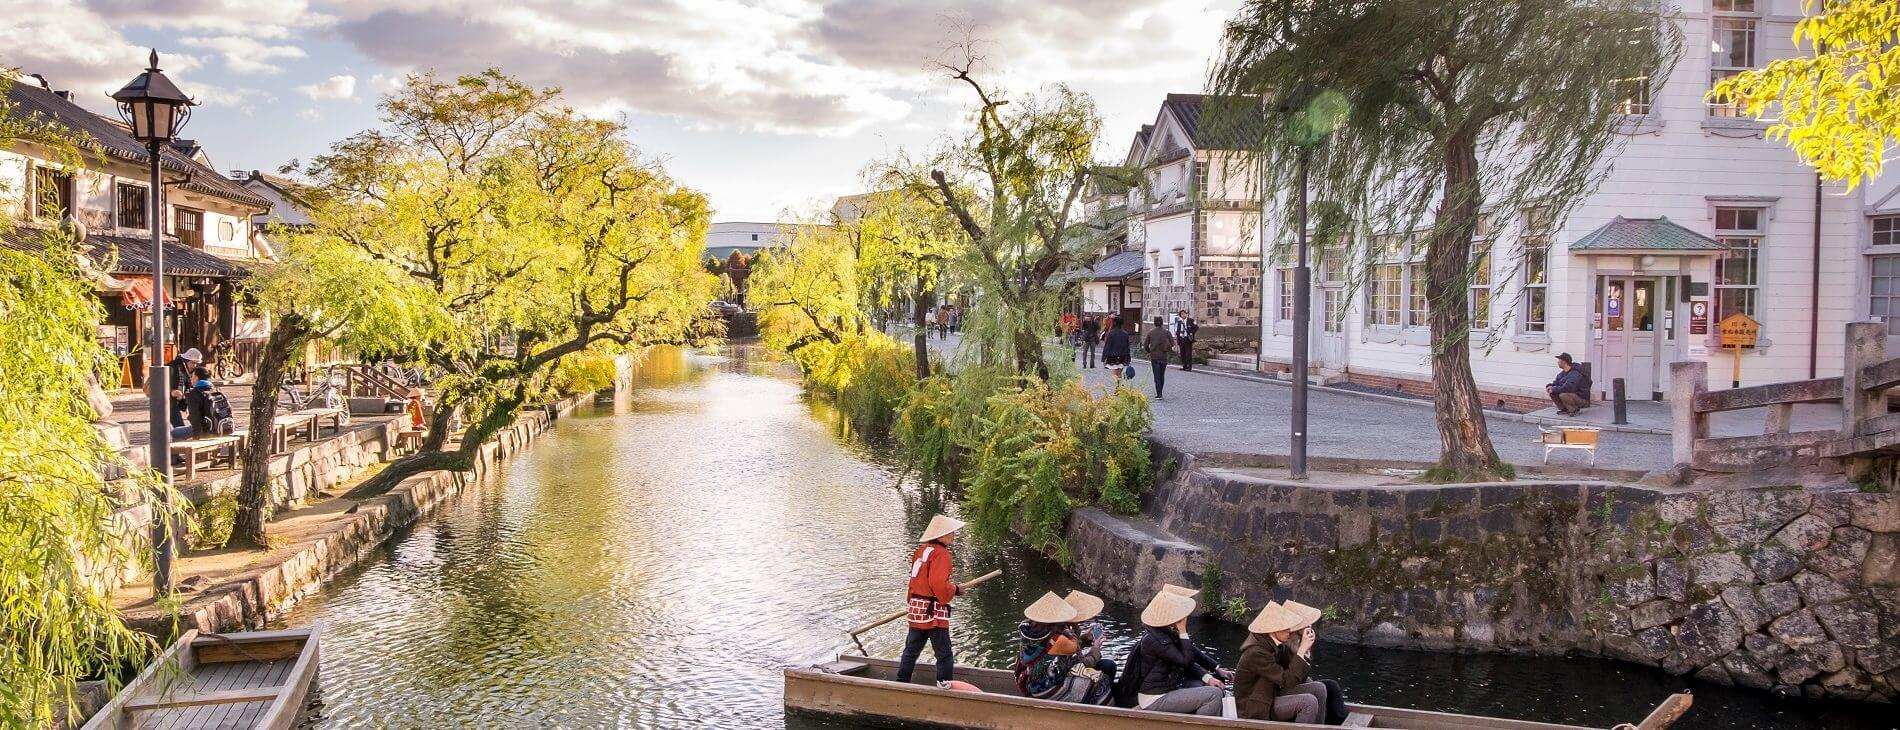 giatore-kurashiki-lake city japan at Kurashiki Bikan Historical Quarter, the Traditional Boat Tour of Kurashiki Canal Sailing through the center of town copertina